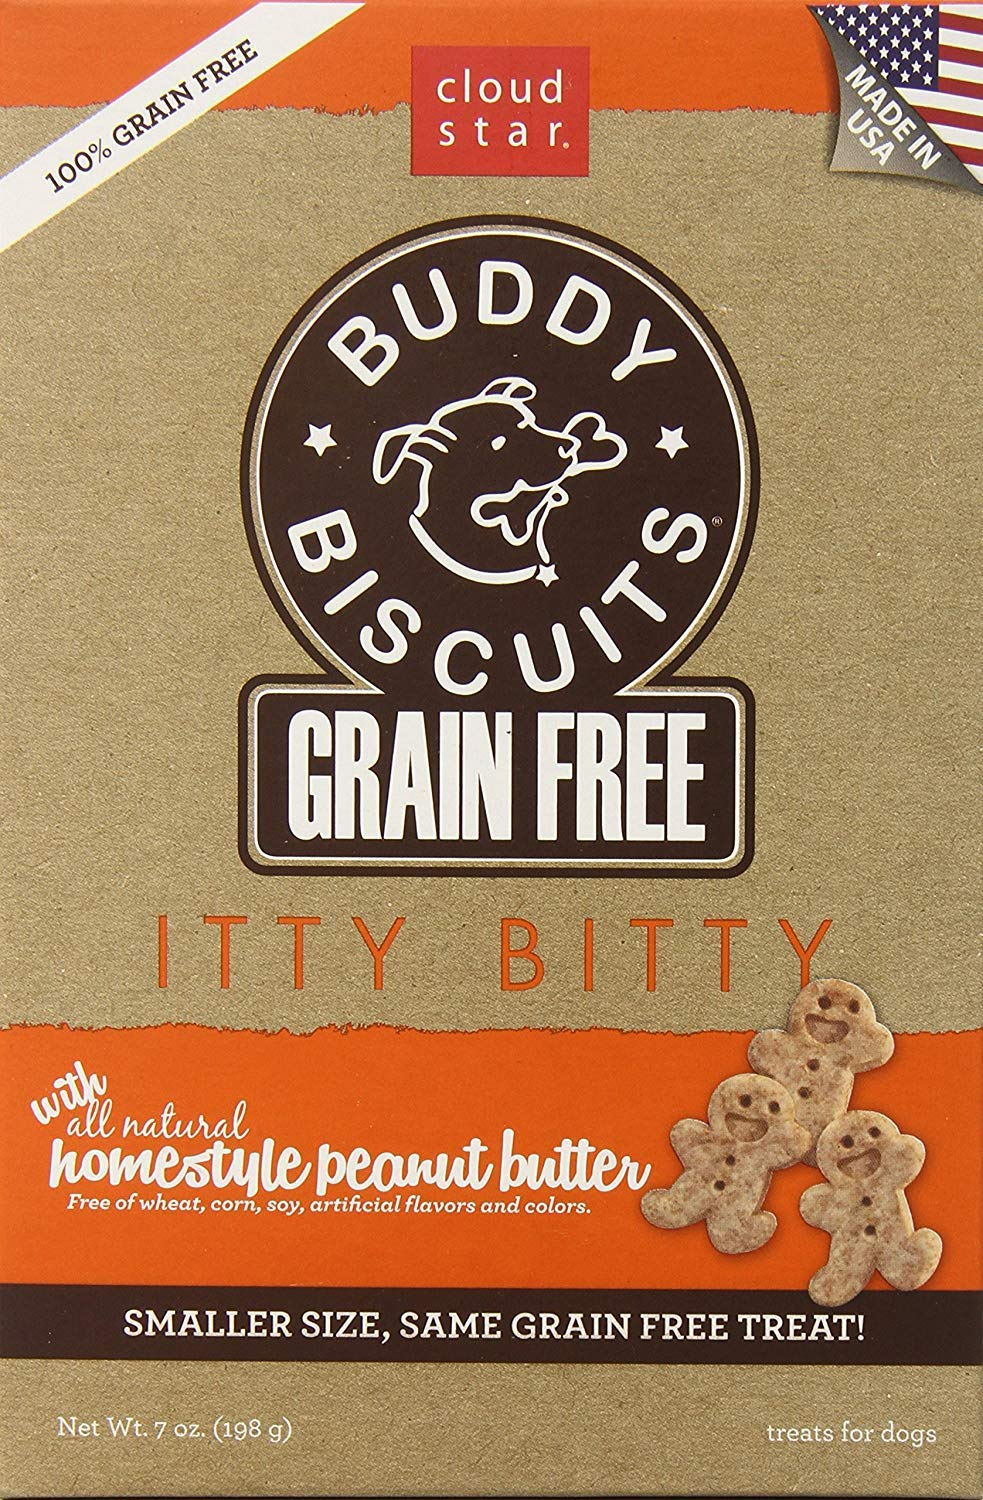 2-Pack Cloud Star Grain Free Itty Bitty Buddy Biscuits in a Bag, 7-Ounce, Homestyle Peanut Butter (2-Pack)